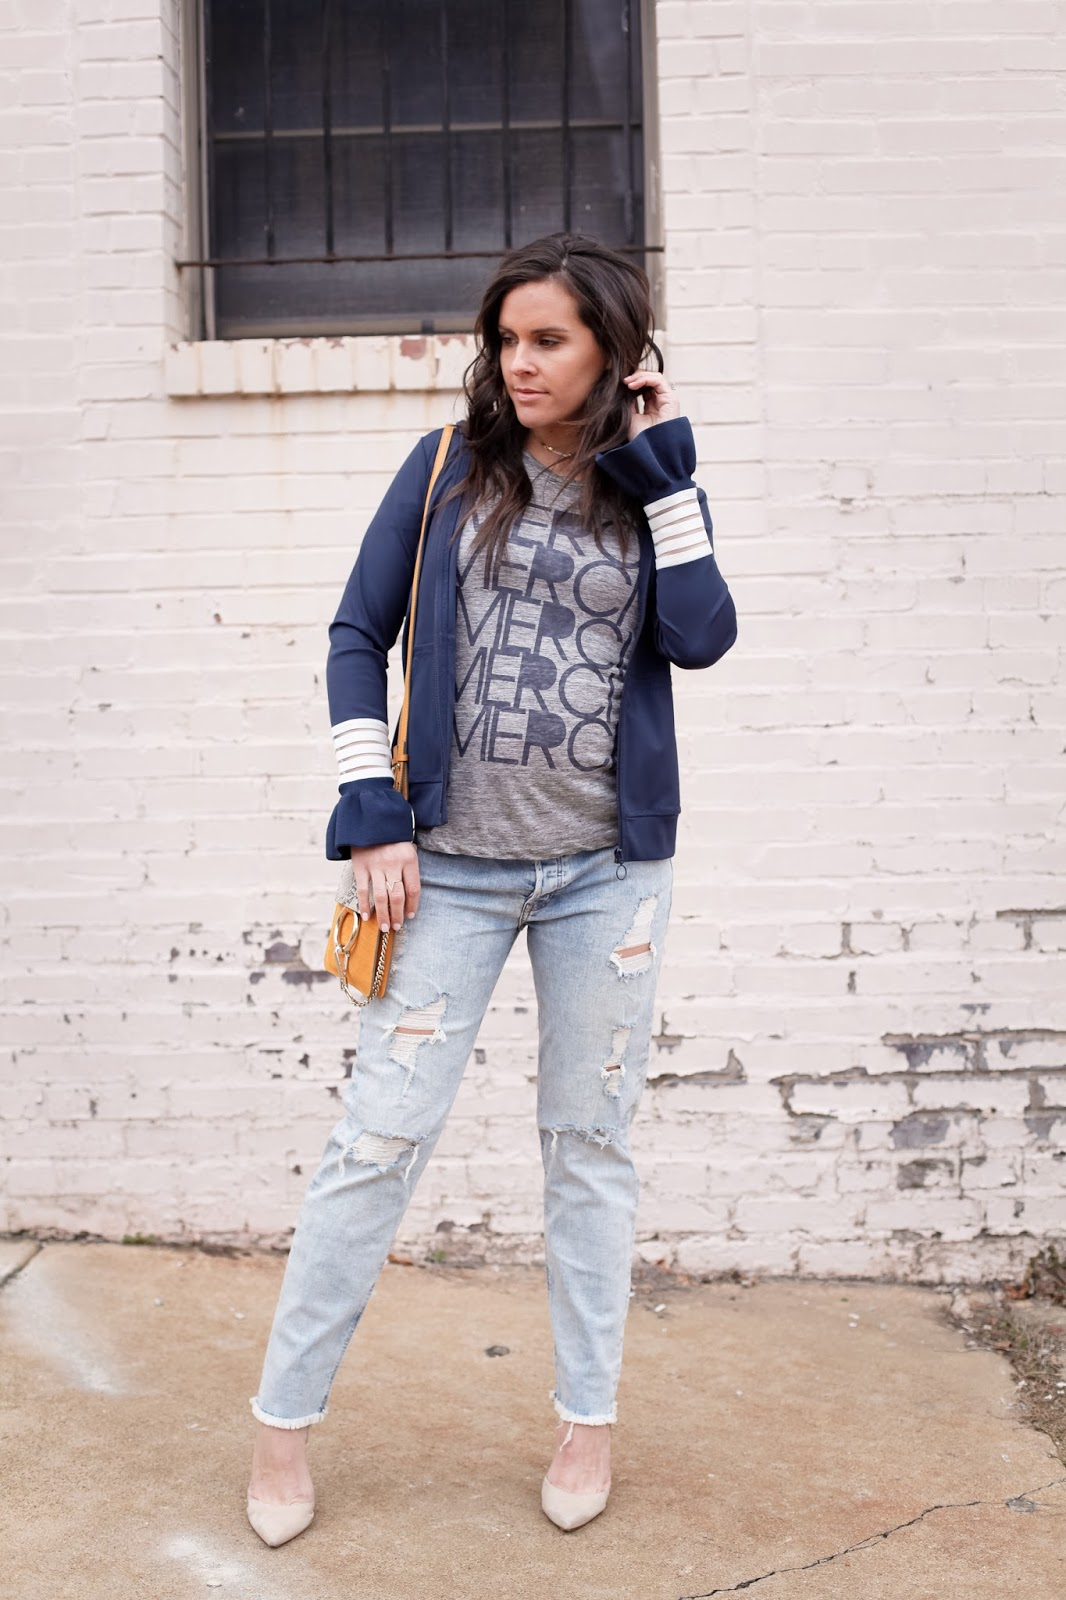 Distressed jeans and a track jacket